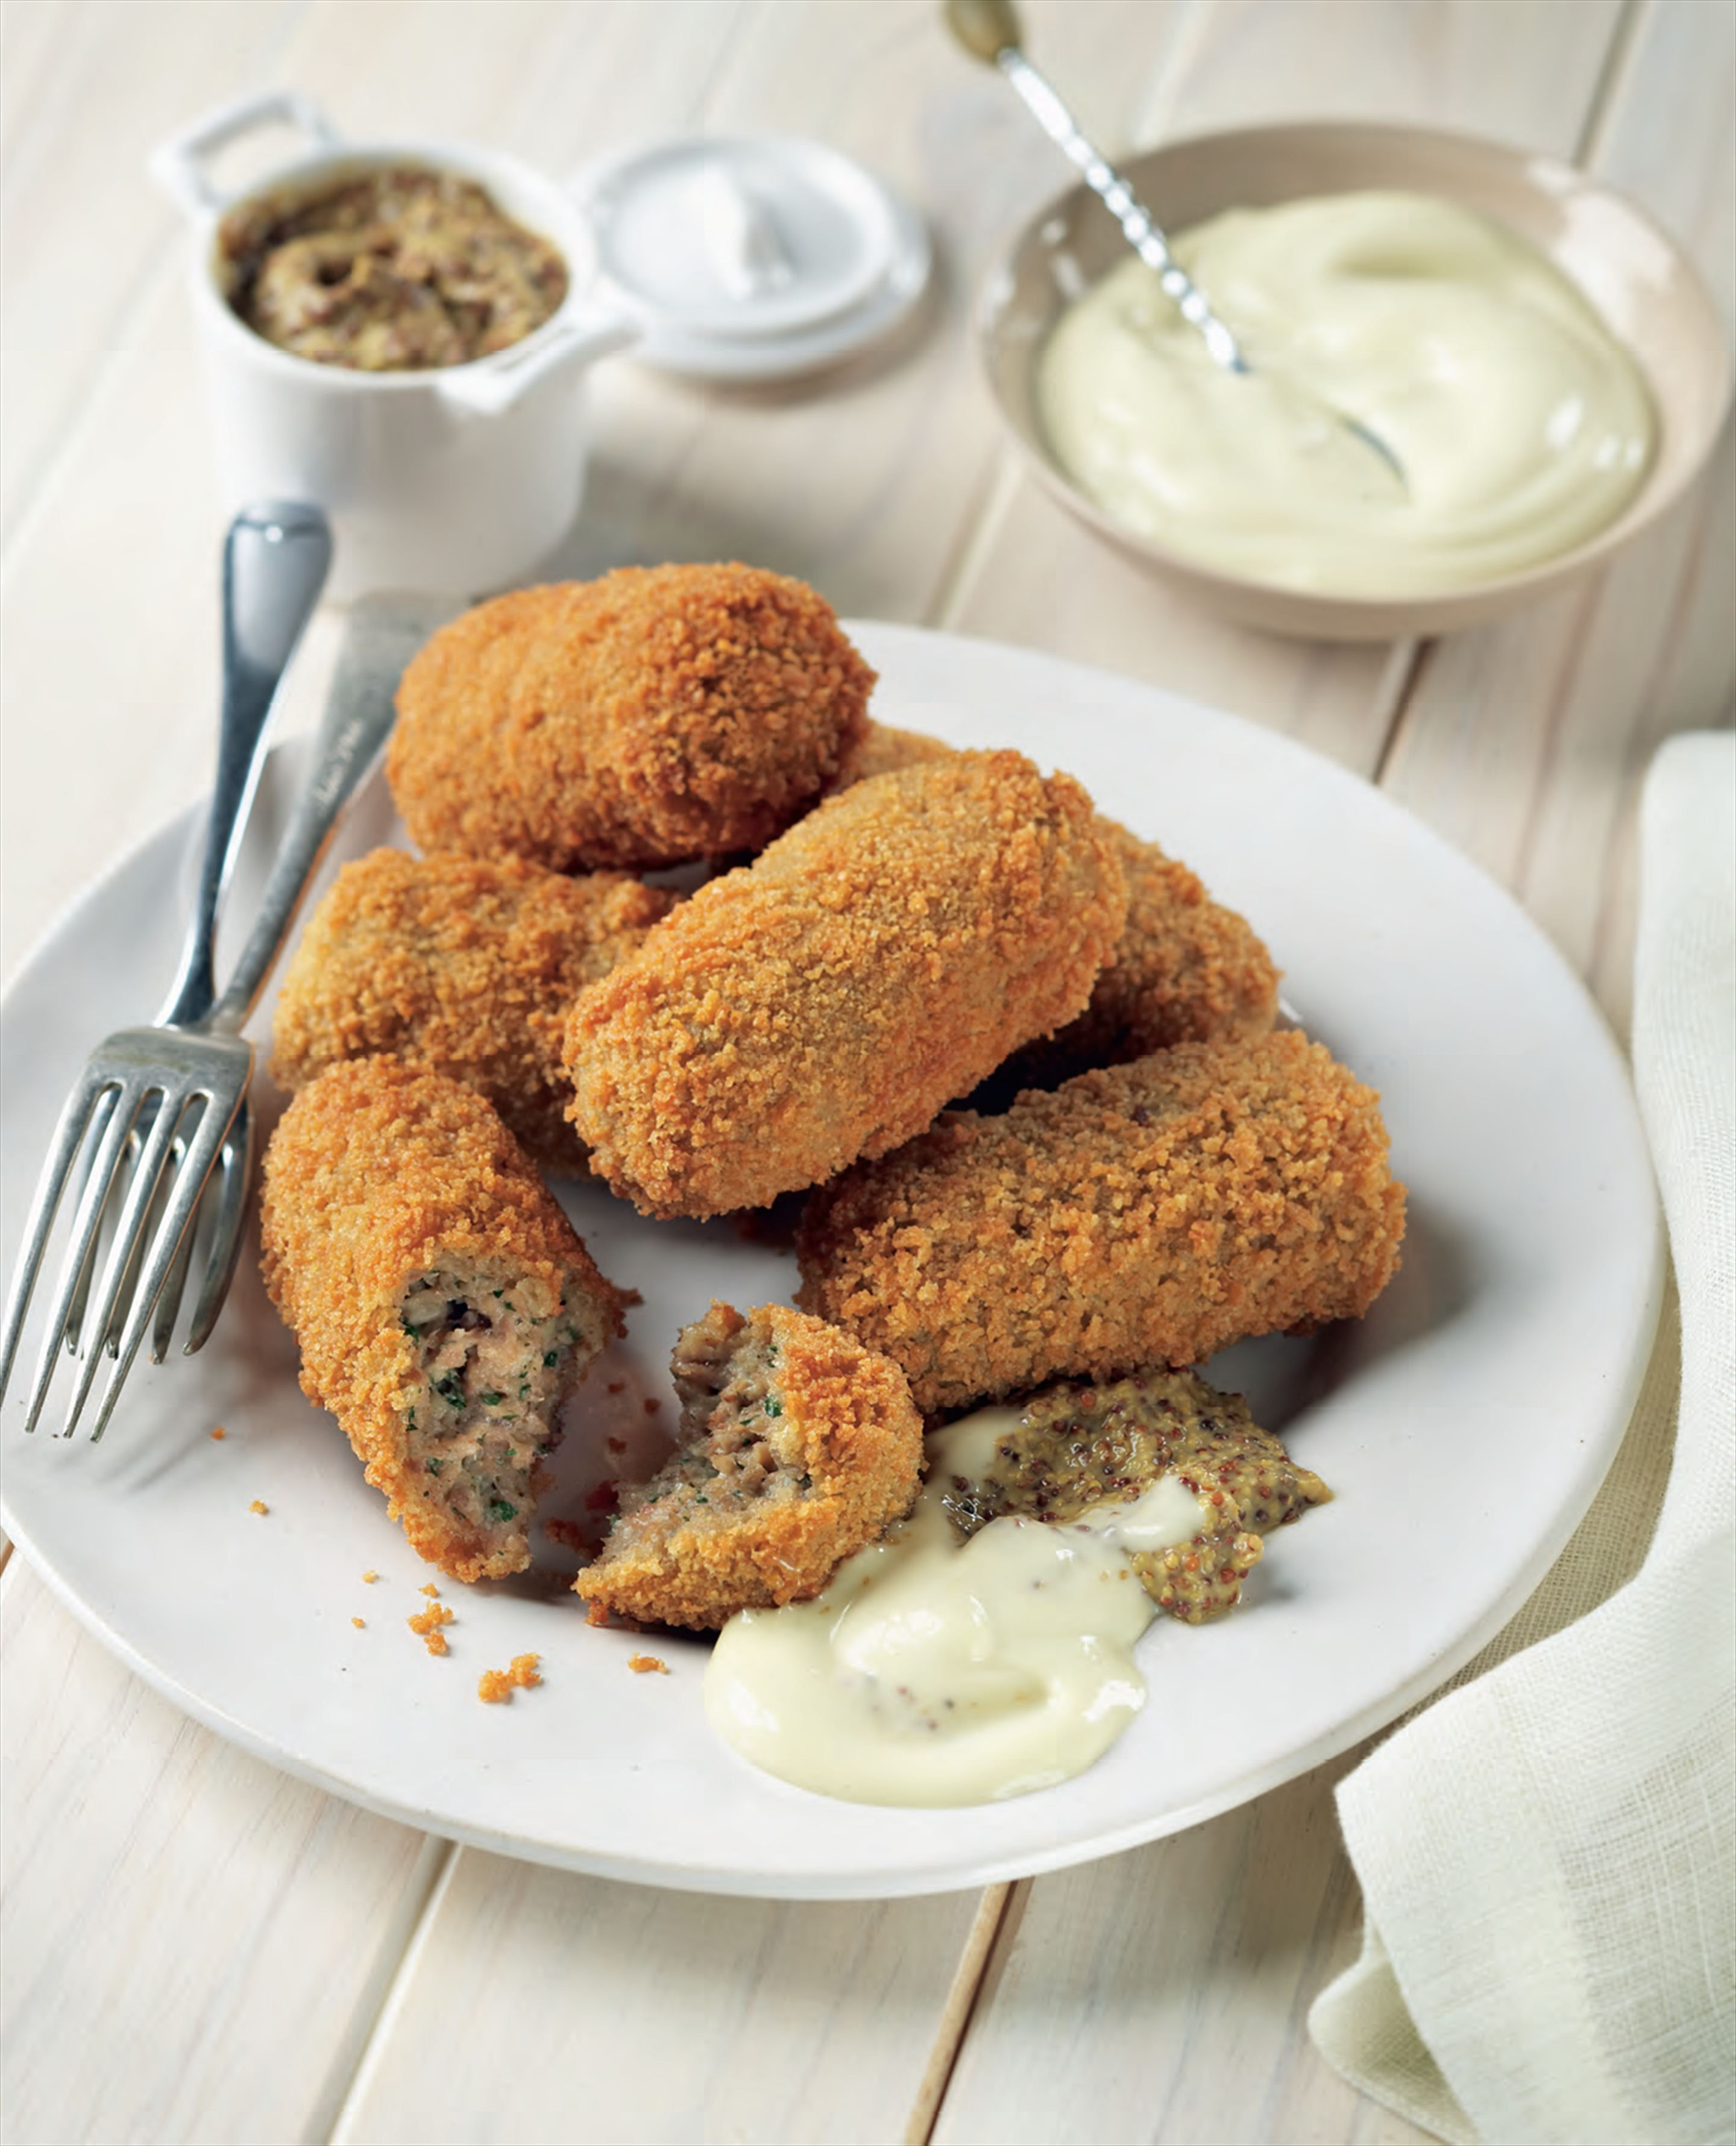 Oma's Dutch croquettes